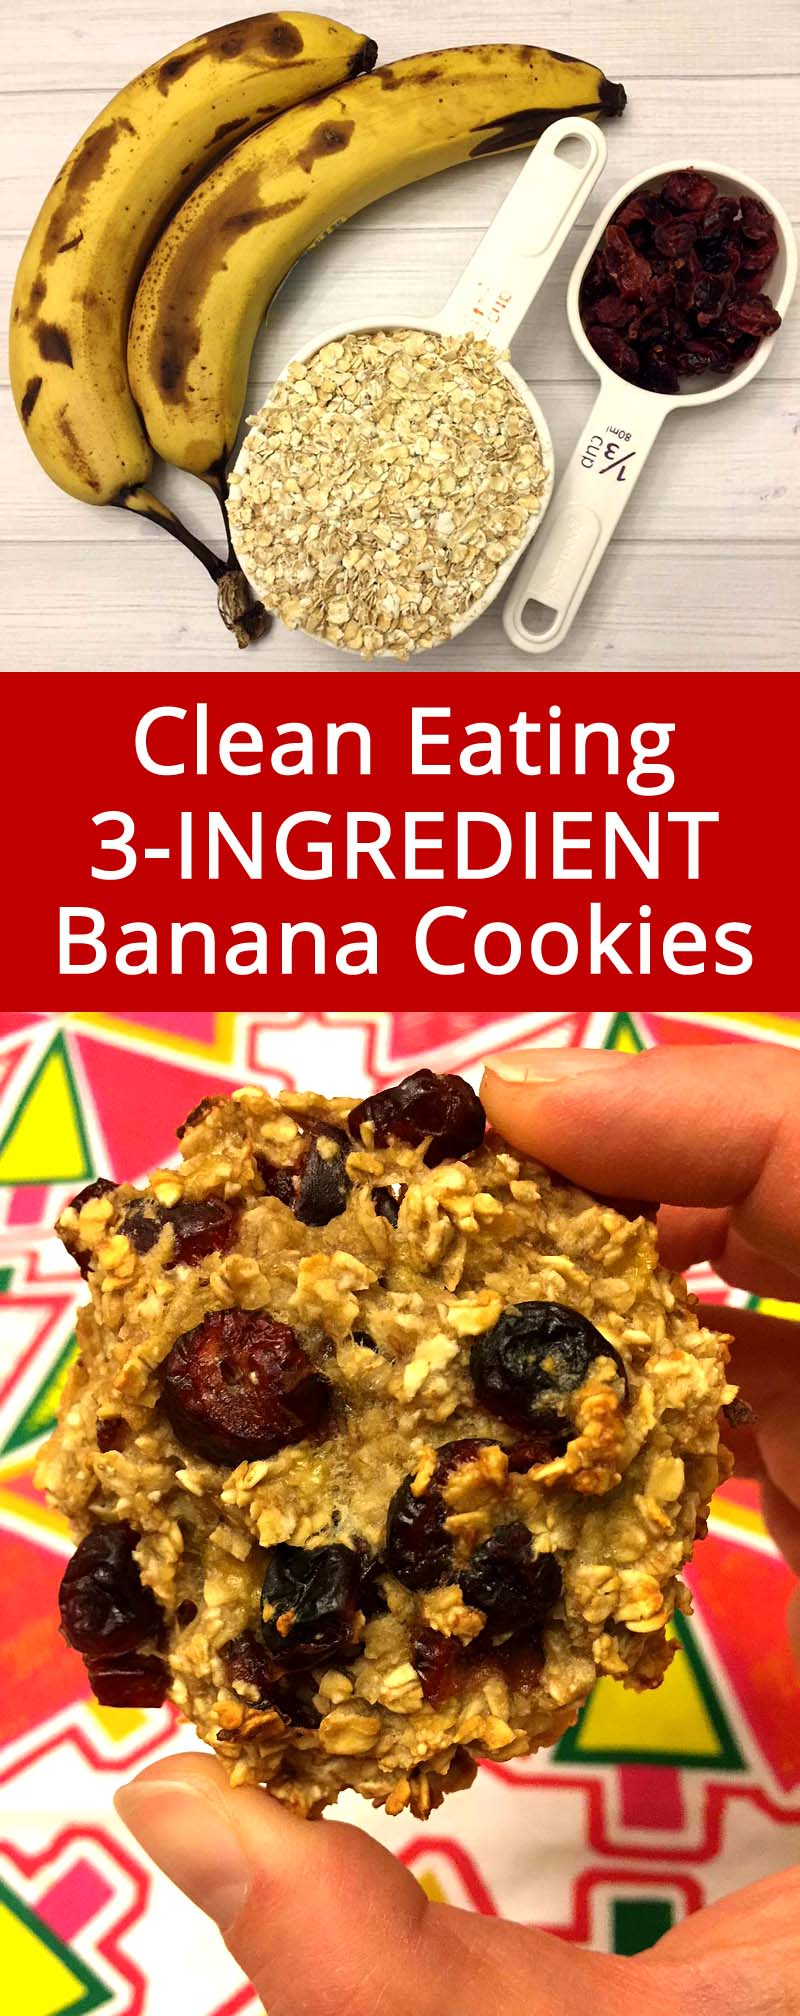 These 3-ingredient banana oatmeal cookies are the healthiest cookies ever! Low calorie, fat-free, gluten-free and sugar-free! Finally a cookie that is actually healthy and good for you! What a perfect clean eating recipe!